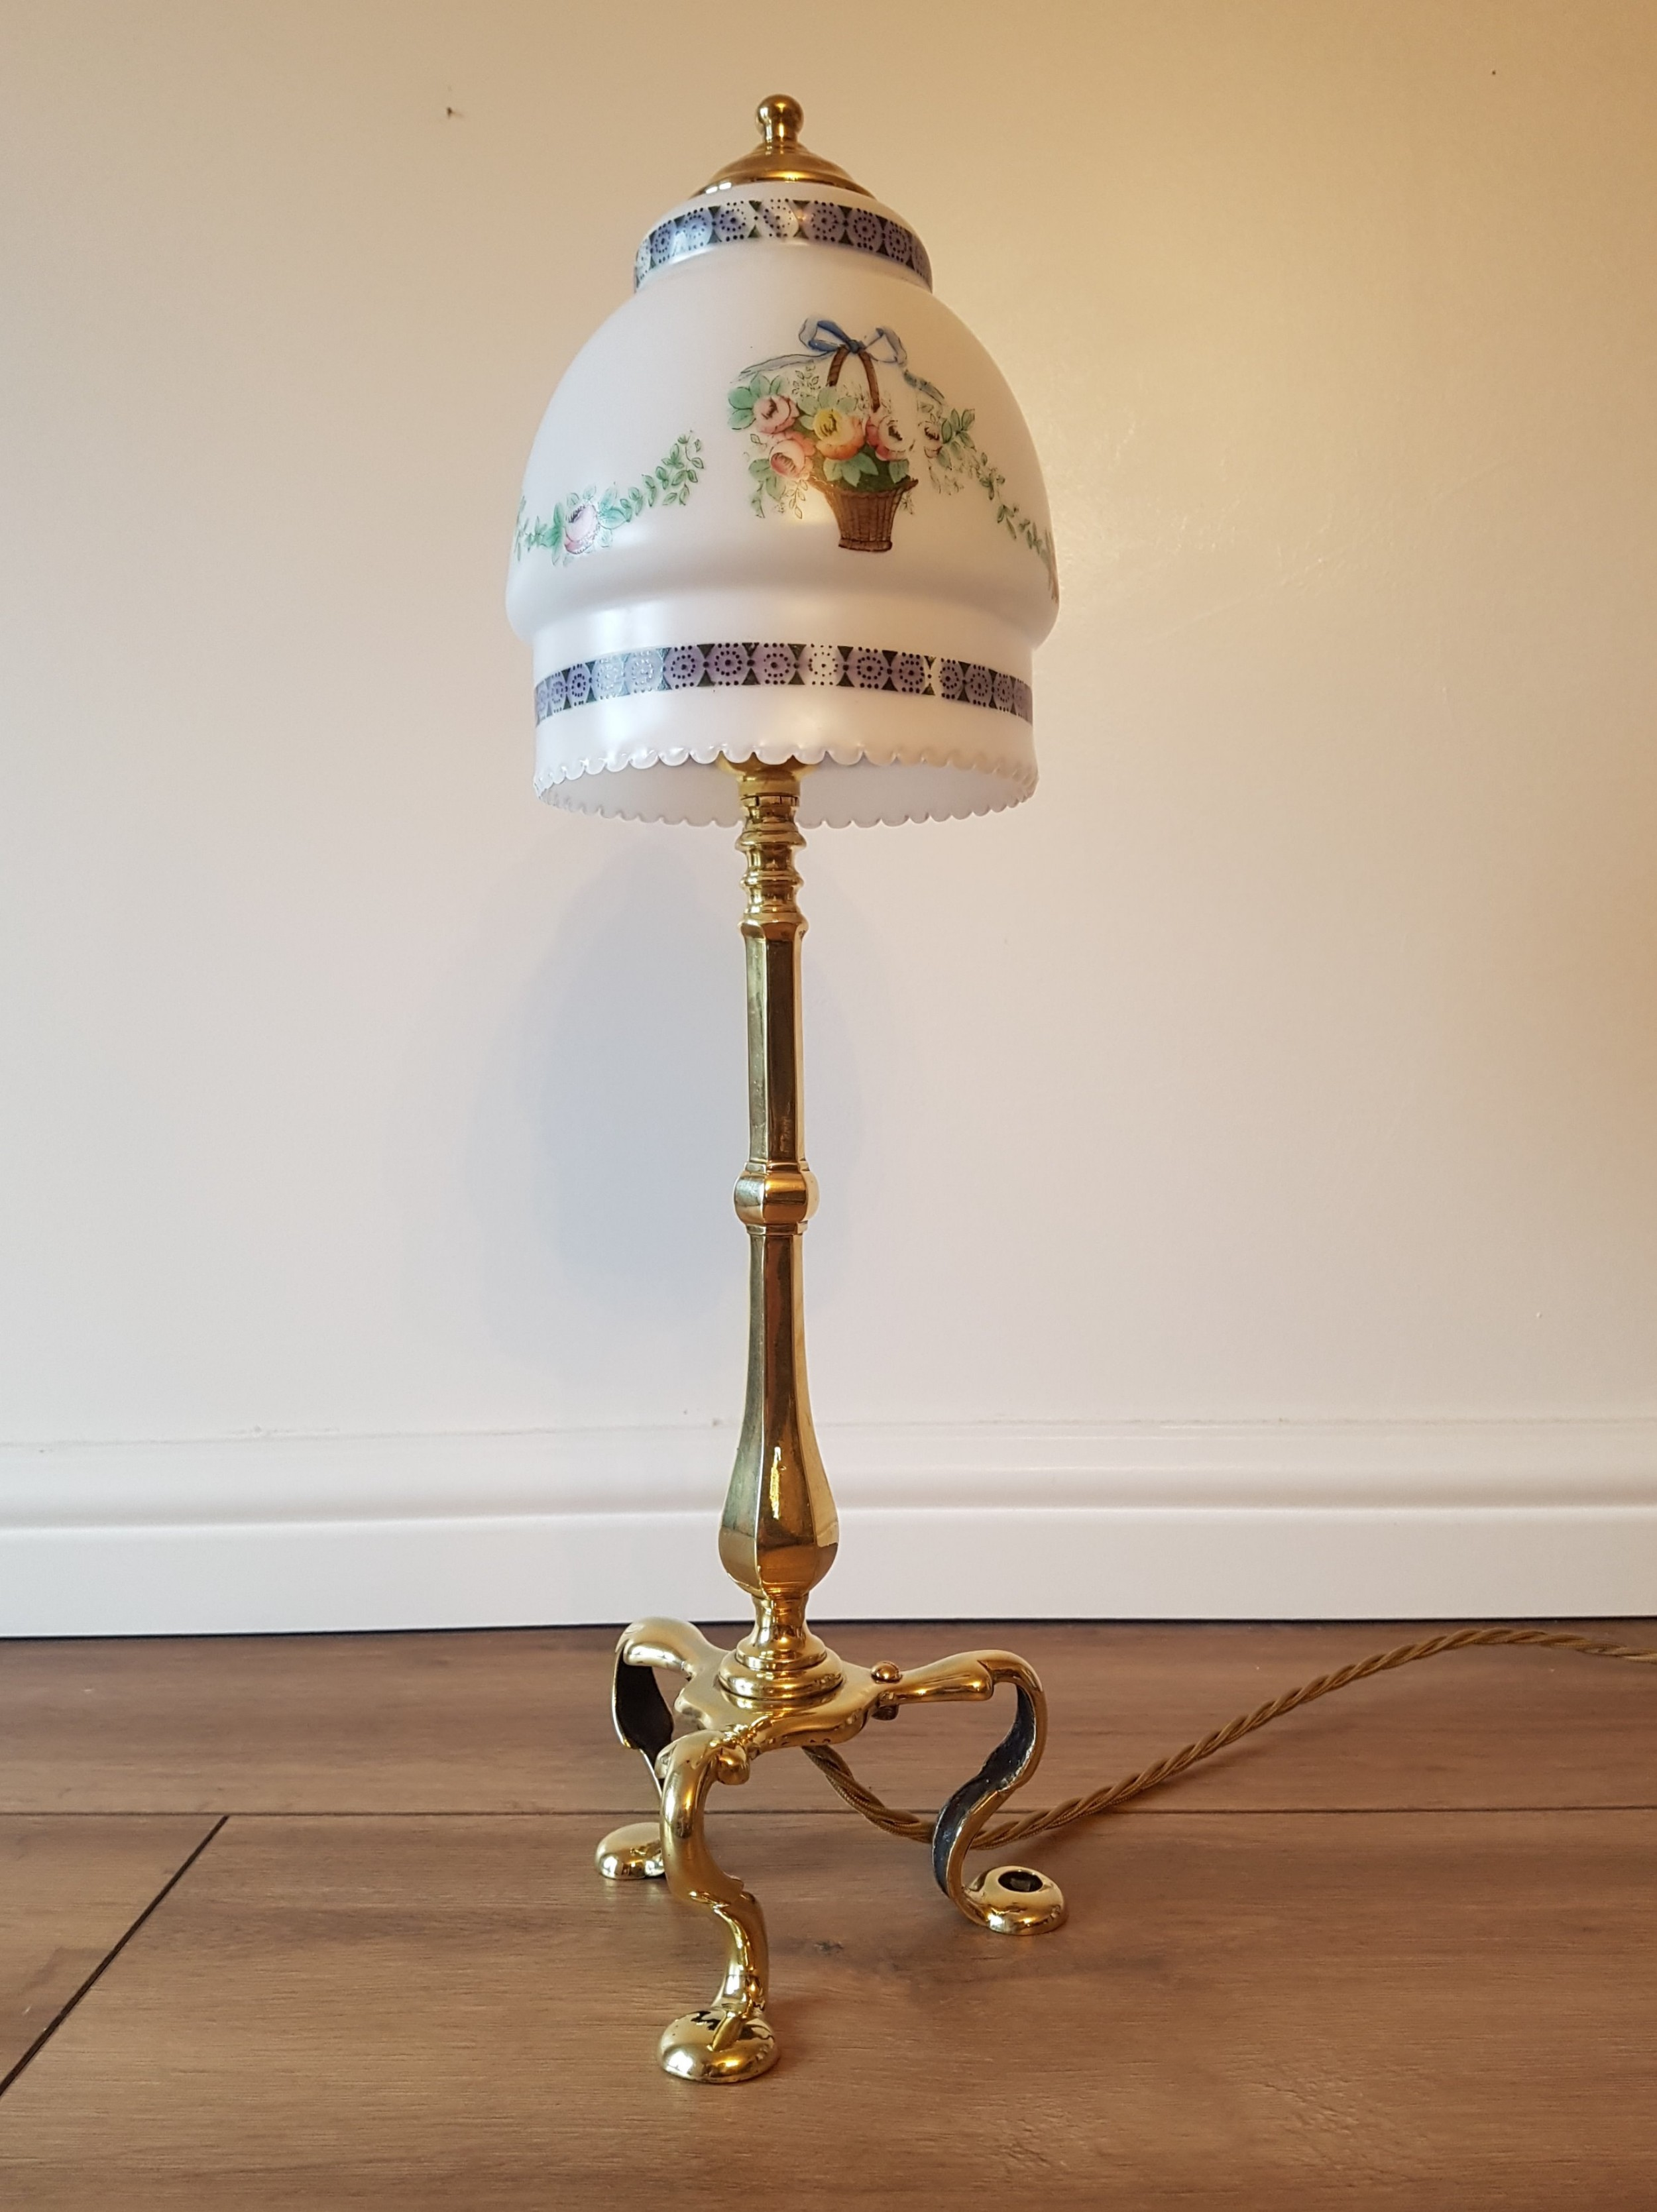 C1910 brass pullman table lamp 1 of a near pair rewired 523410 c1910 brass pullman table lamp 1 of a near pair rewired keyboard keysfo Images